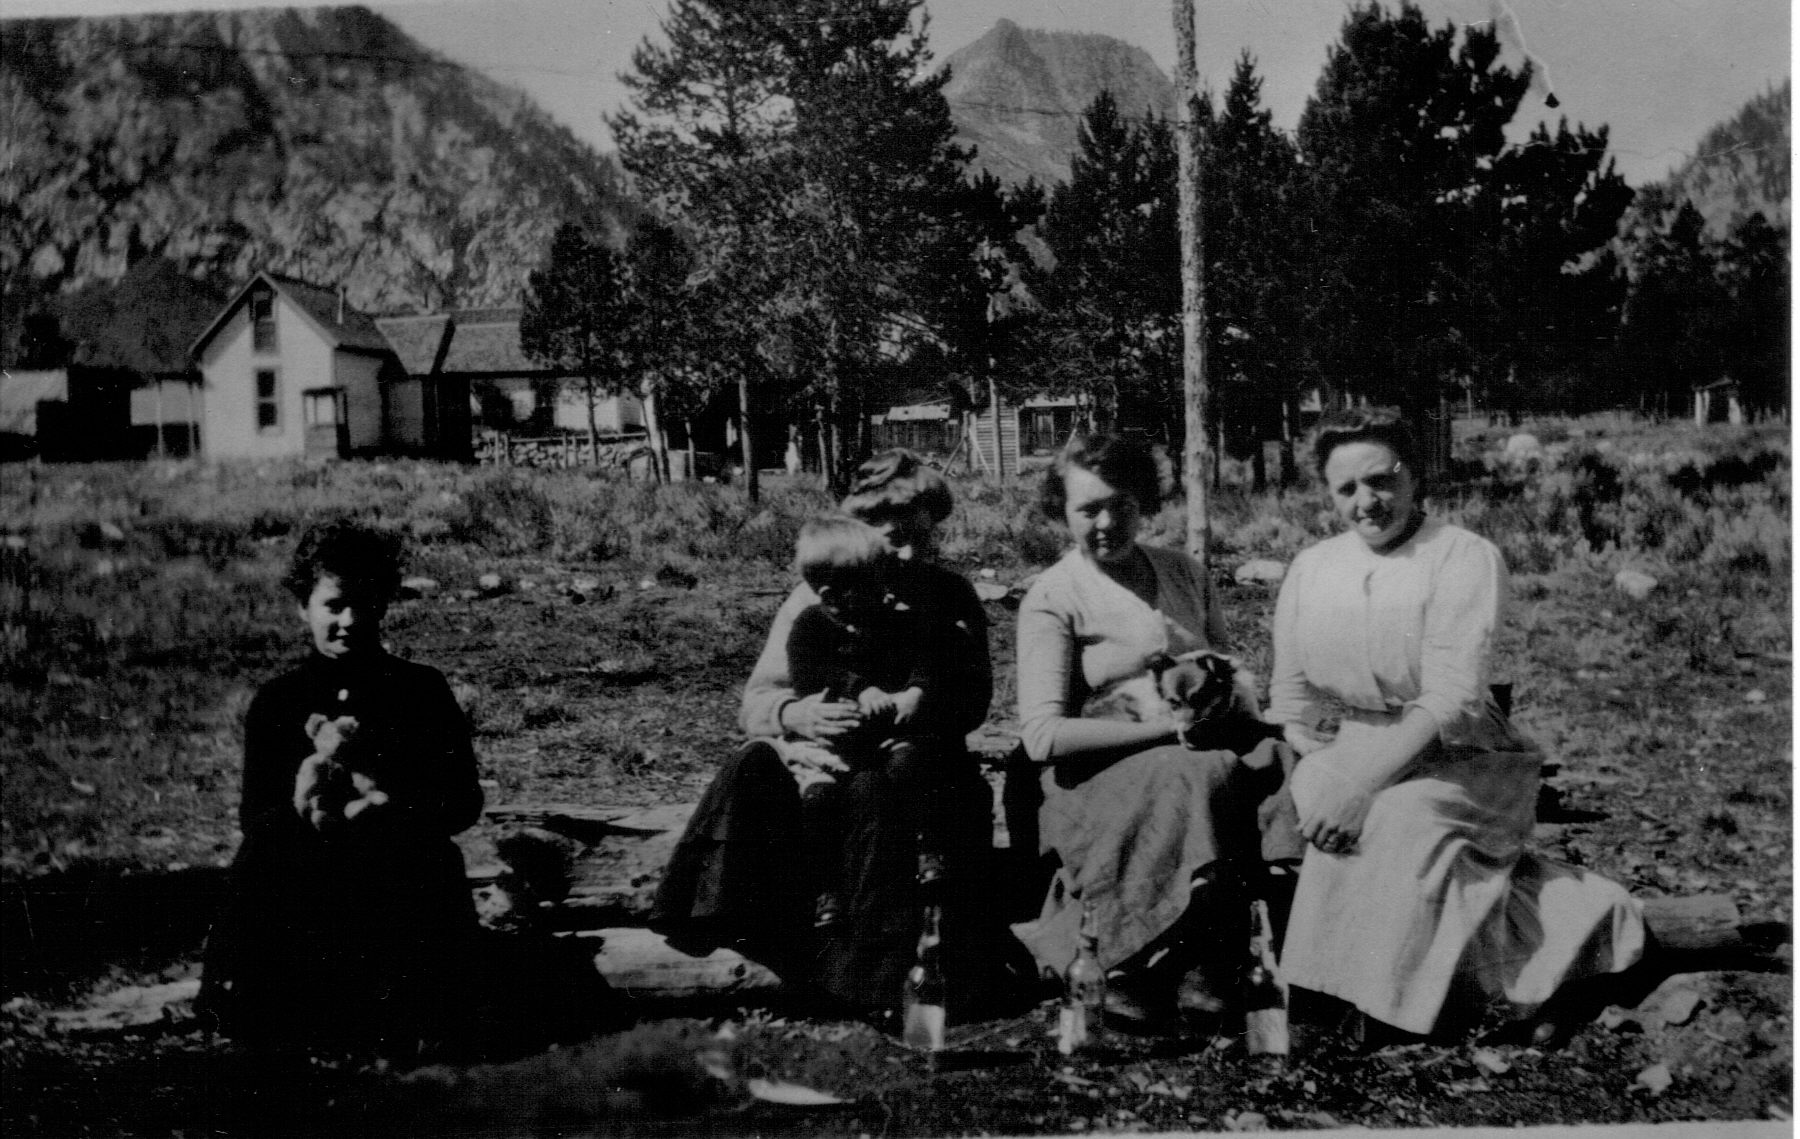 A black and white photo from 1915 featuring a group of women with a young child and a dog. One woman sits apart from the rest holding what looks like a teddy bear. Notice their long skirts and sleeves.